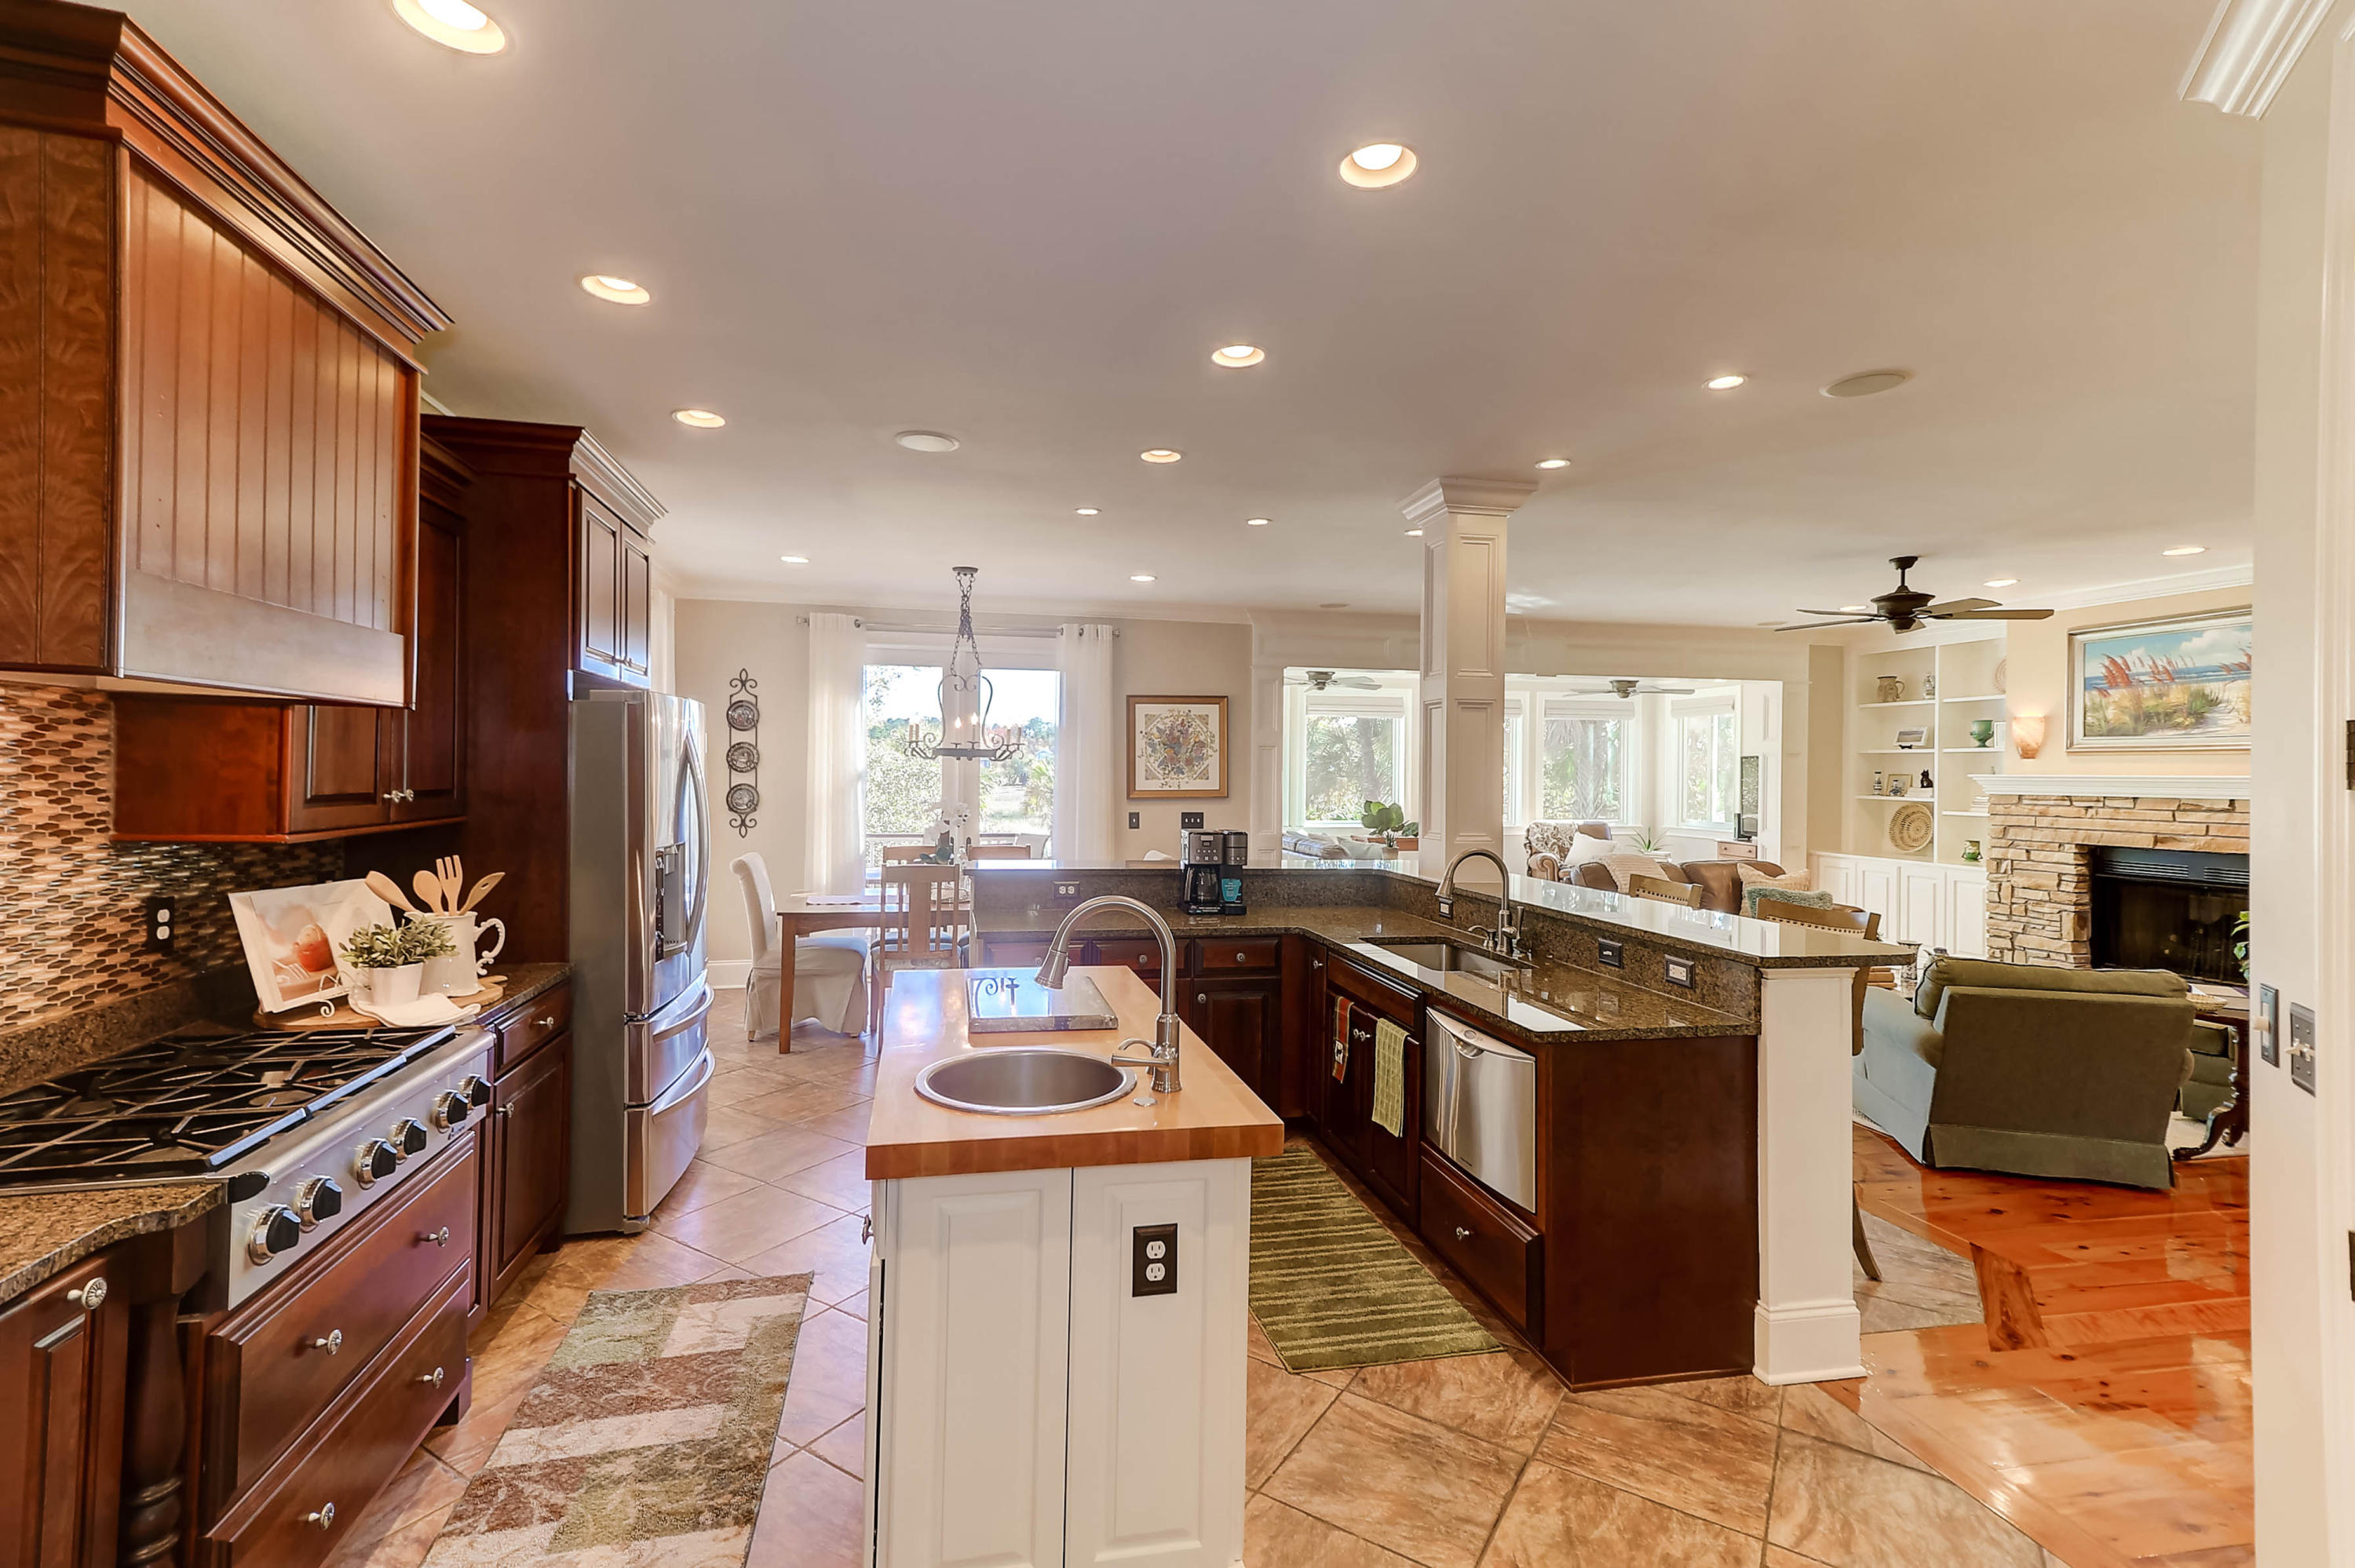 Dunes West Homes For Sale - 1764 Greenspoint, Mount Pleasant, SC - 9